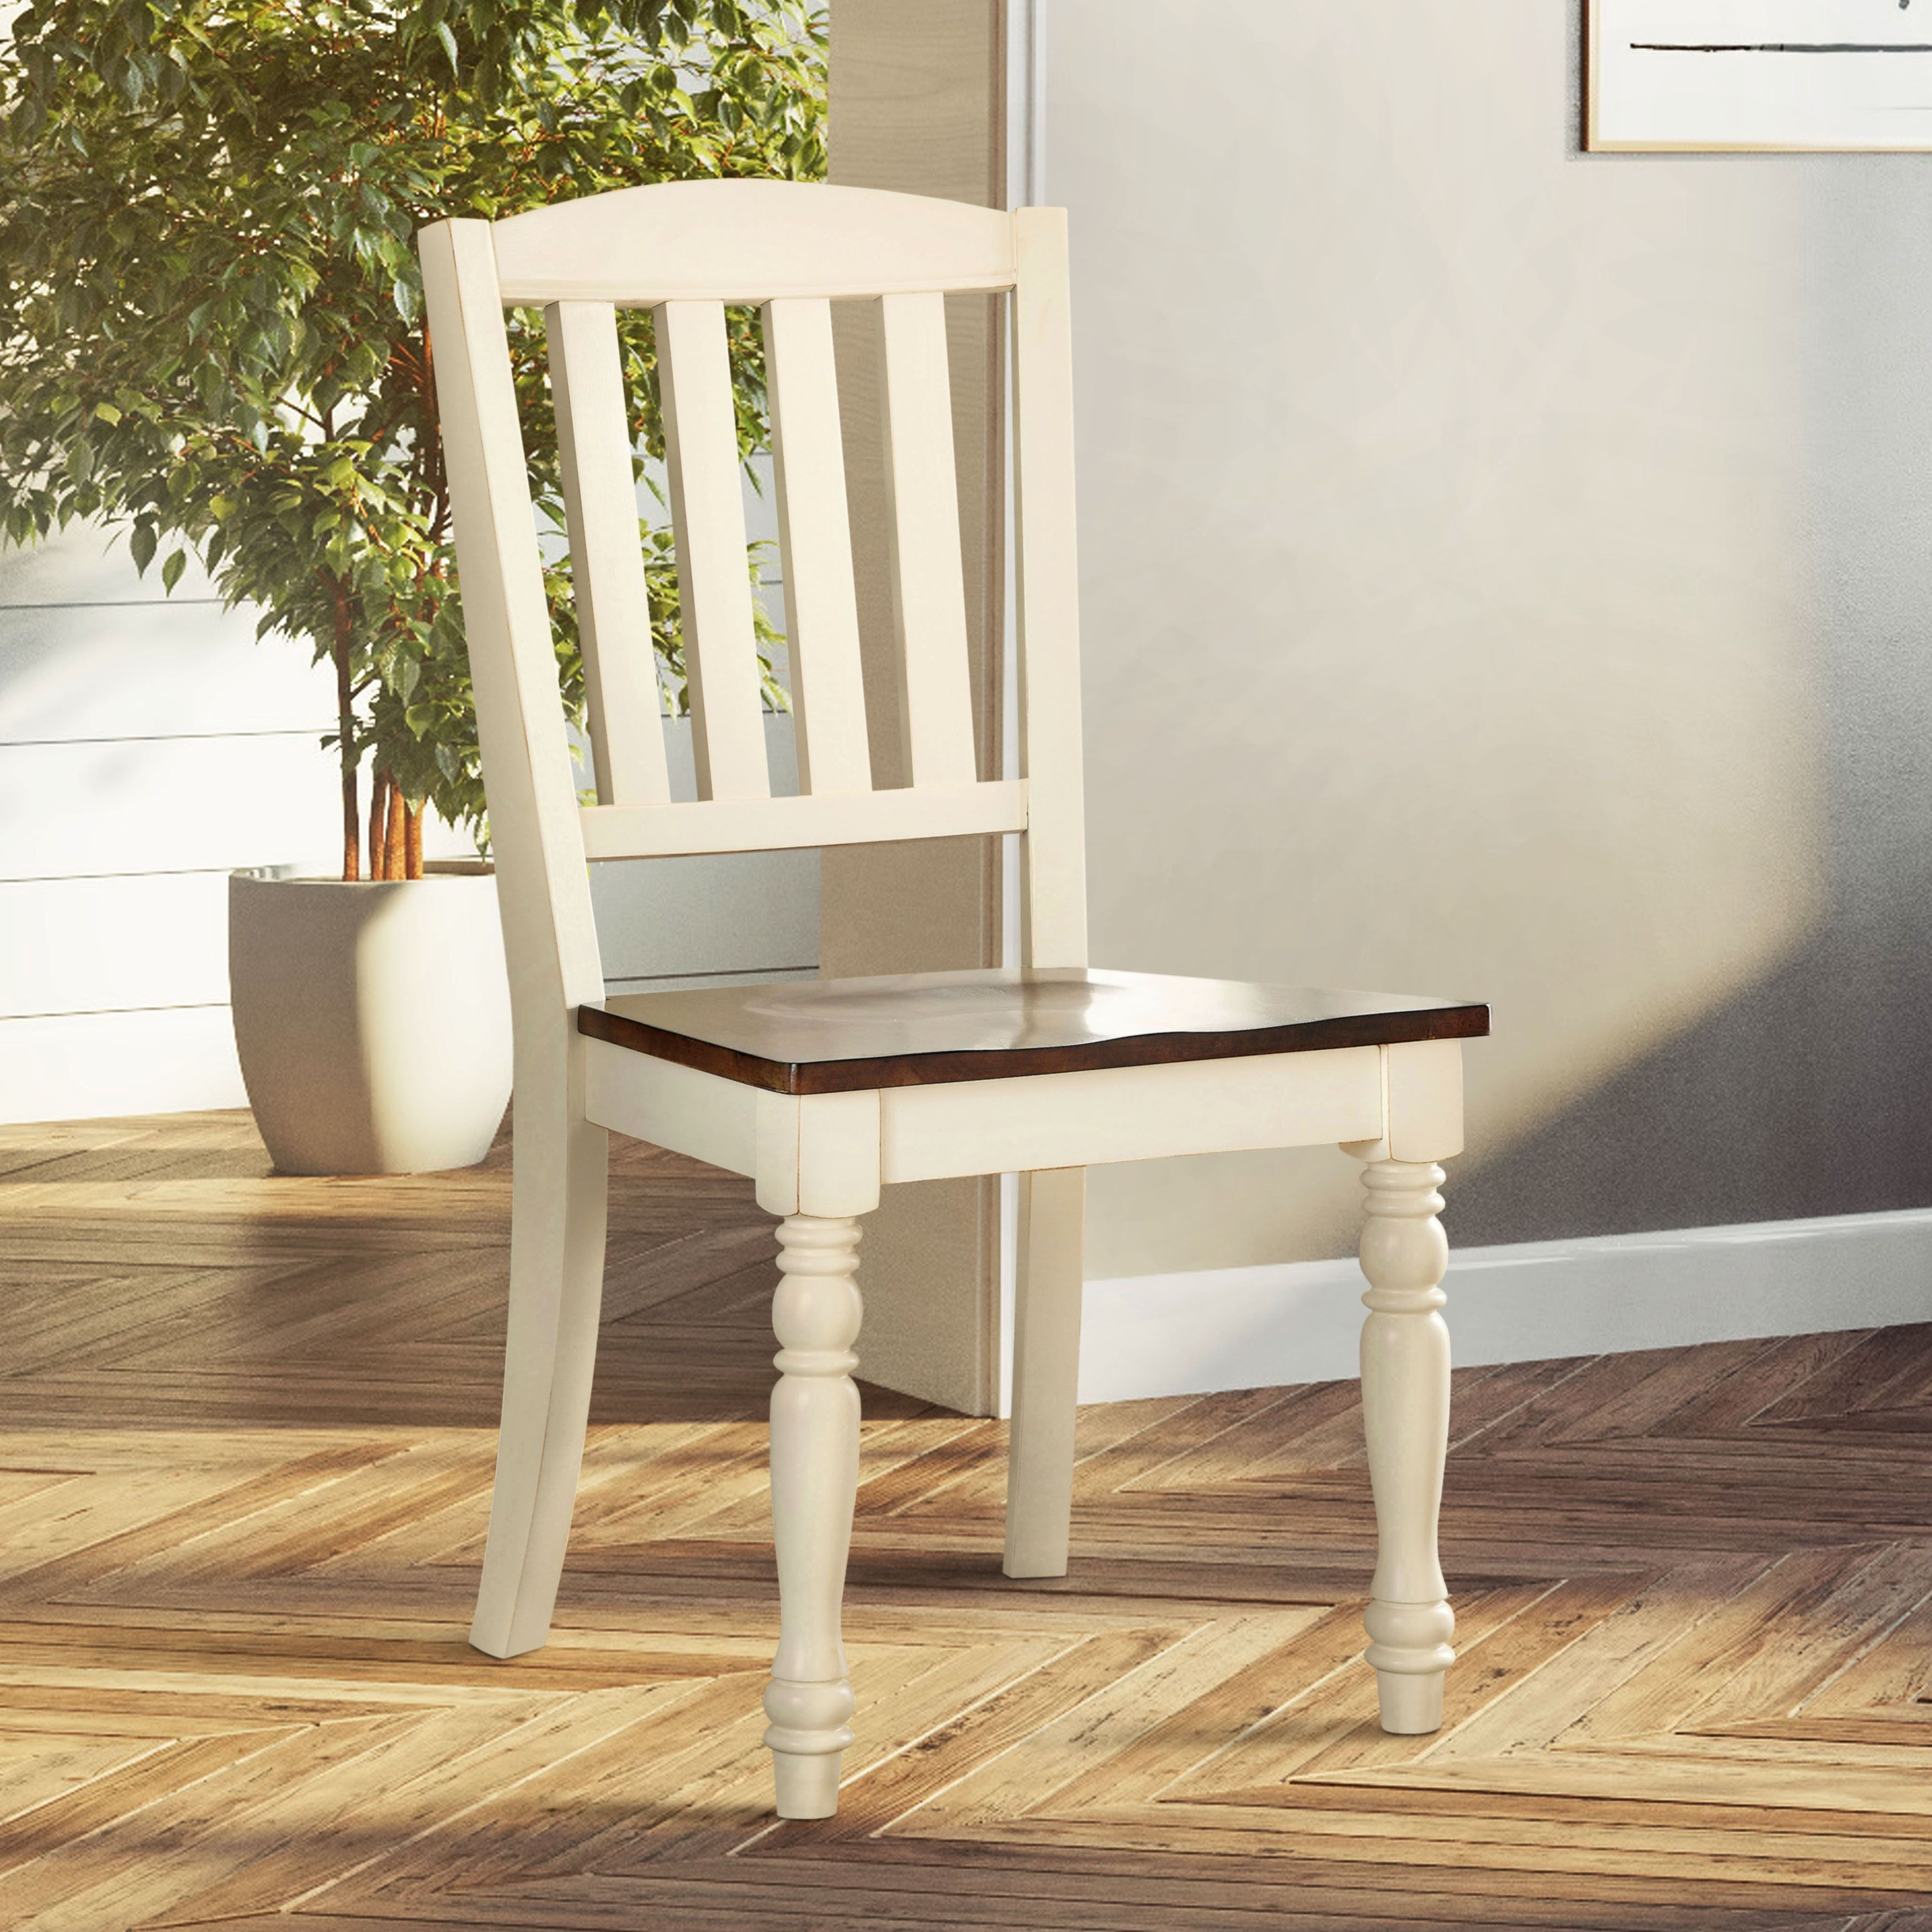 cottage style chairs outdoor chair cushion covers the gray barn castlefarm 2 tone dining set of vintage white dark oak brown veneer